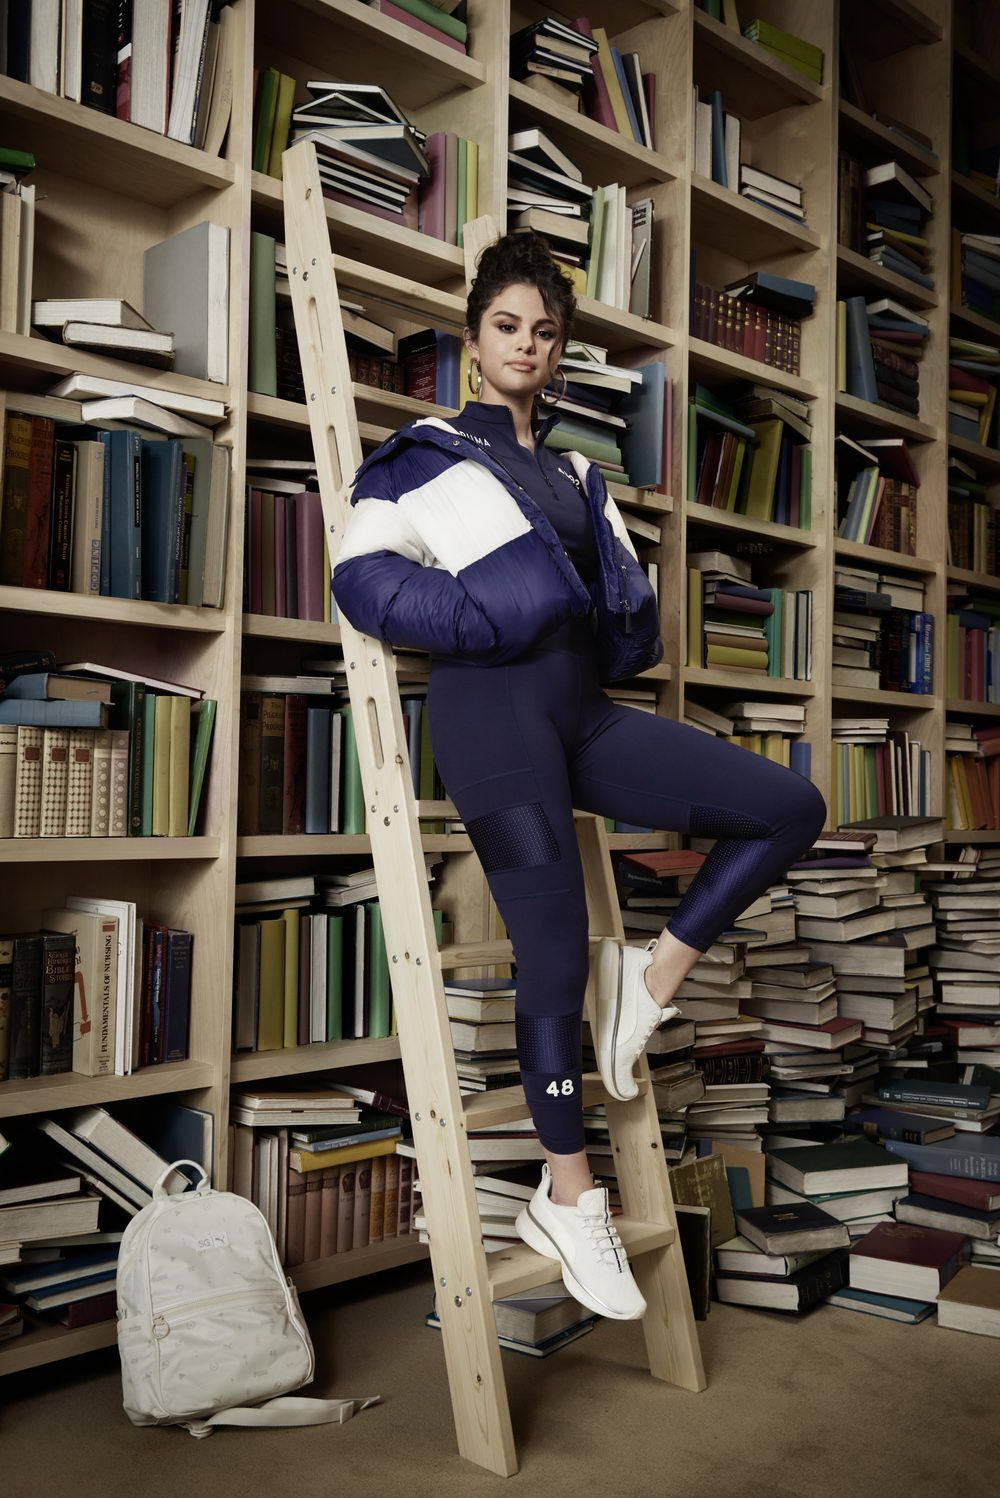 19AW_xCC_Selena-Collection_SG-Runner-Quilted_0306_RGB_resize